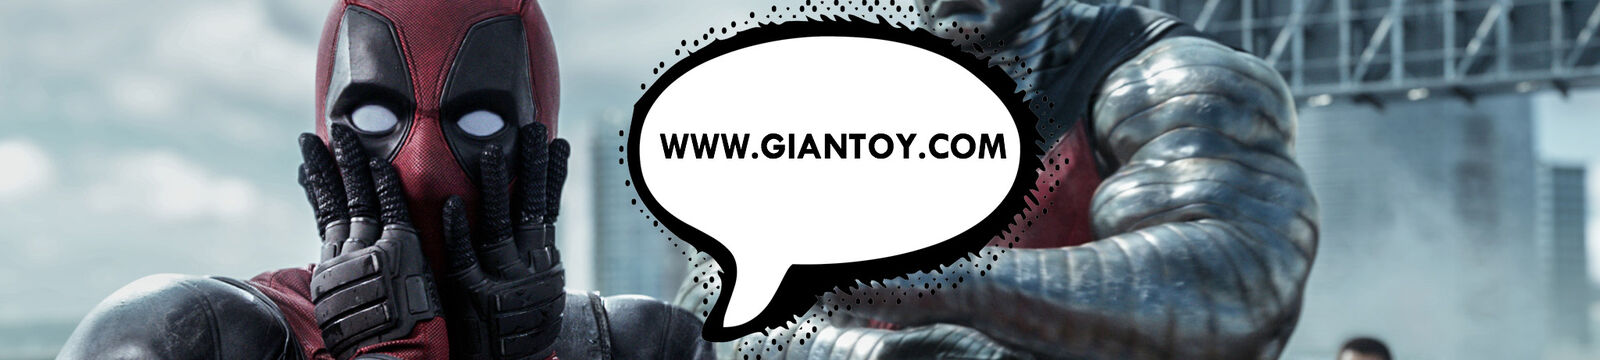 Giantoy——Action Figure Pro Seller.